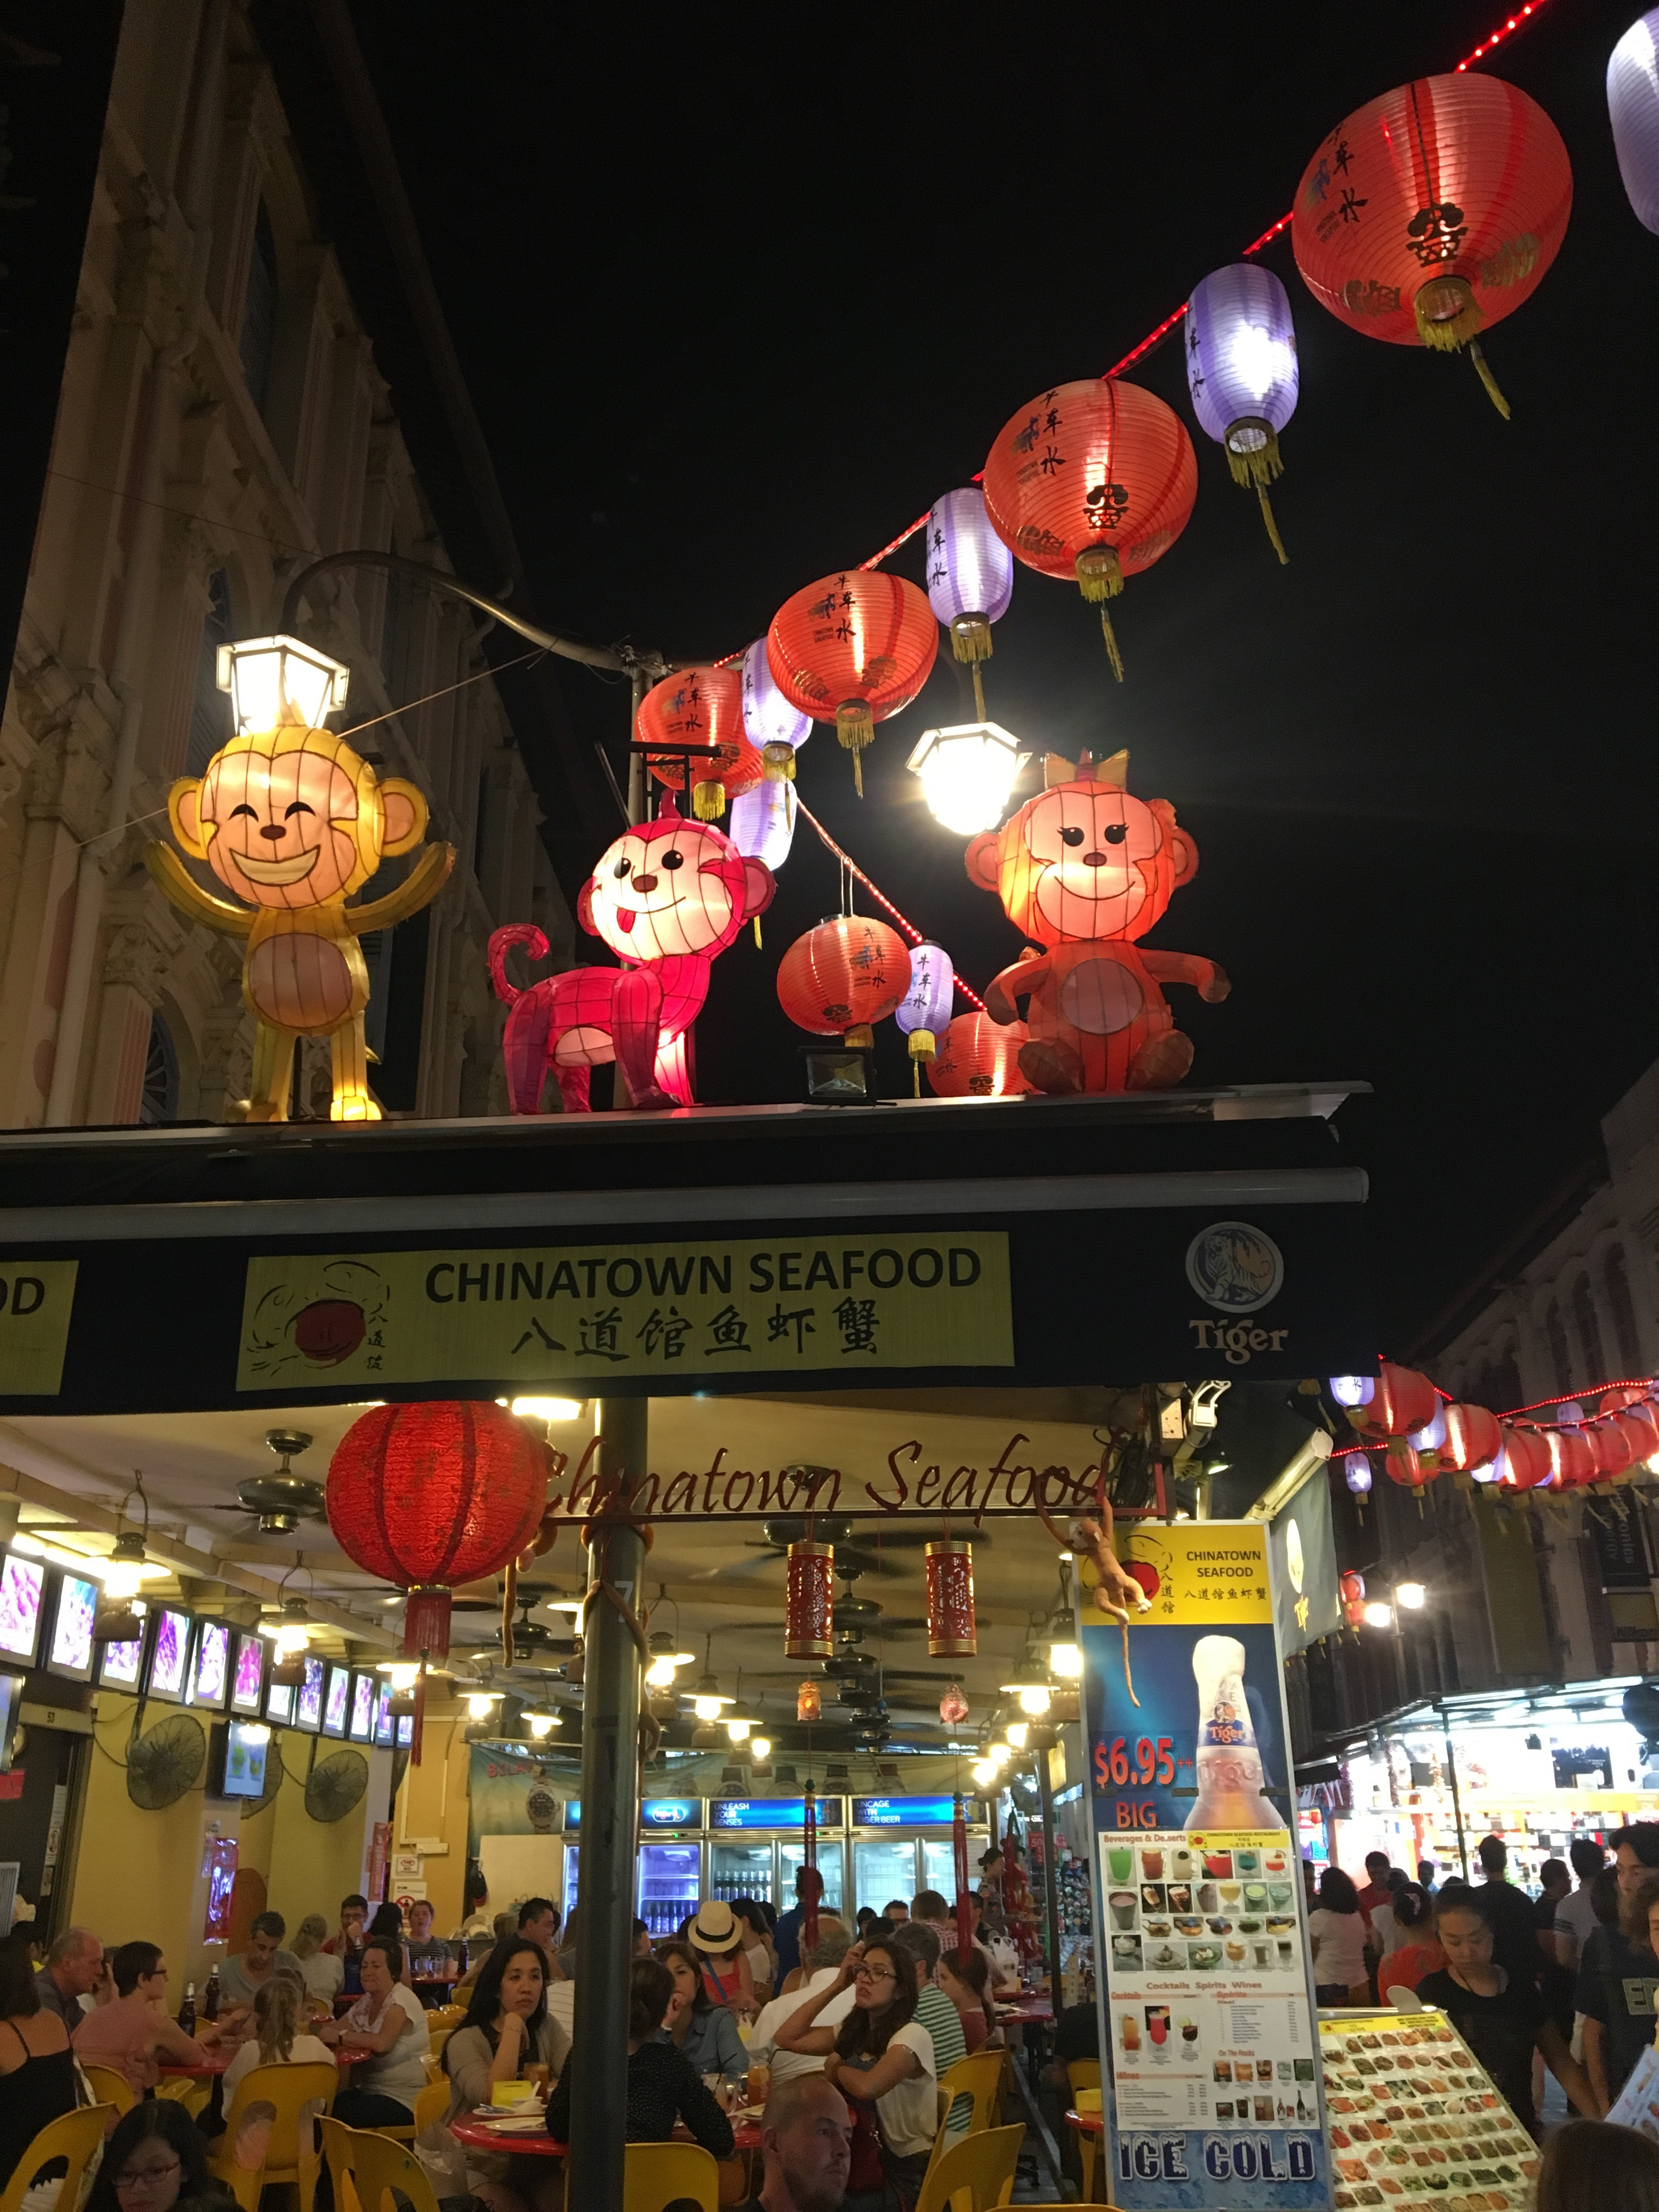 """Exploring Disney-esque Chinatown. I went to the """"50 cents fest"""" where you can try any number of Chinese dishes for just 50c each at food stalls."""